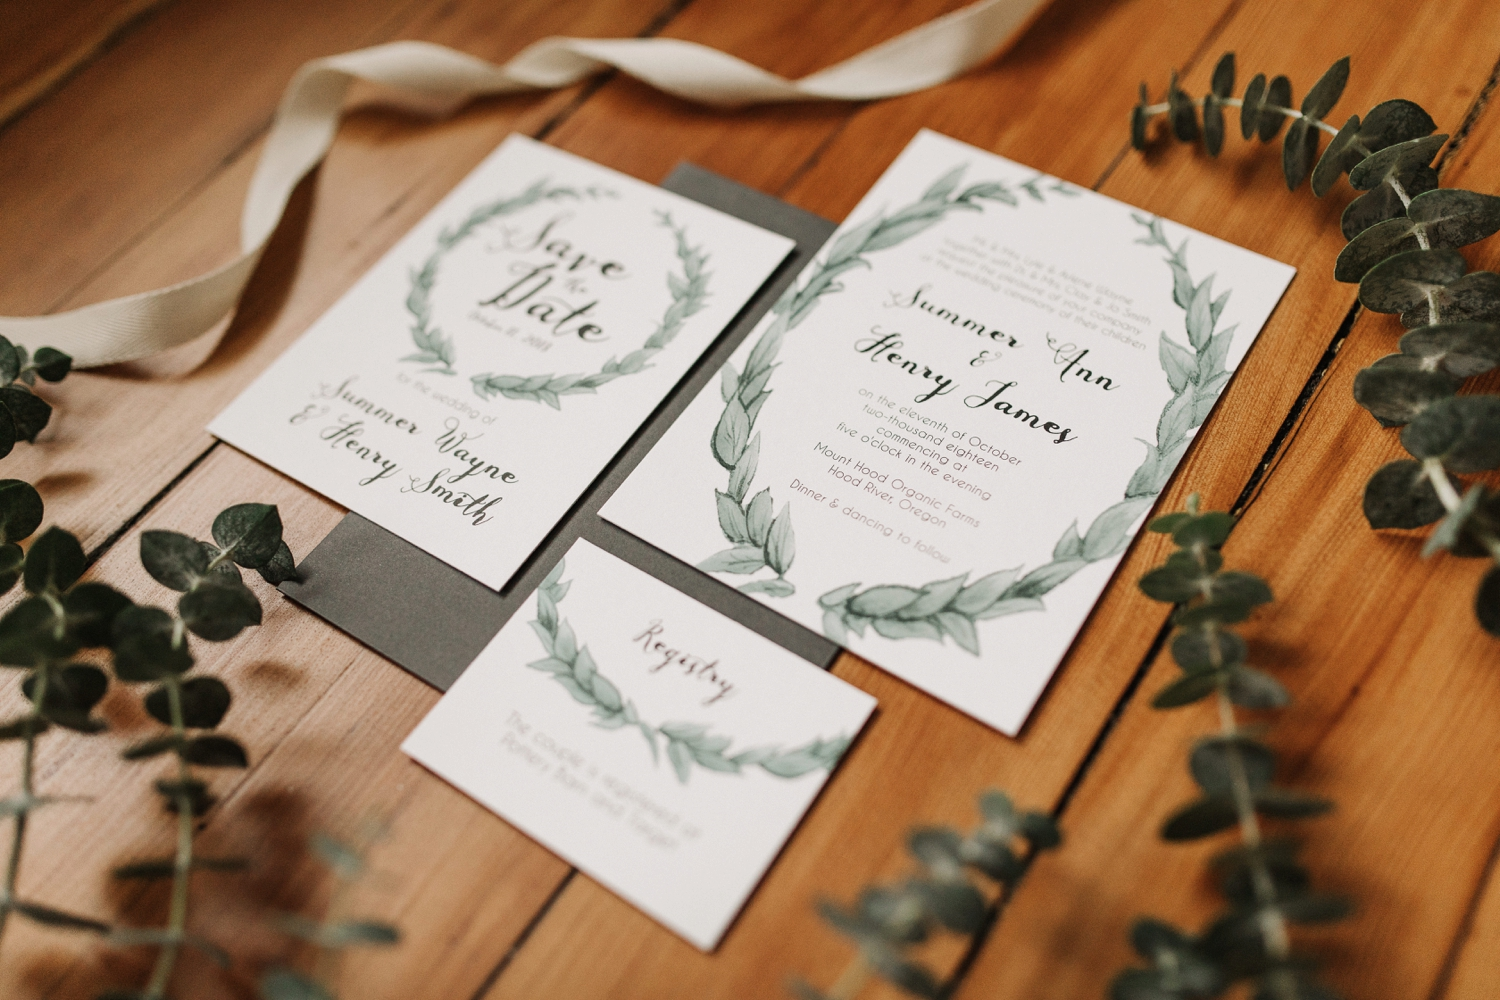 Basic-Invite-Cards-Wedding-Photo-02.JPG